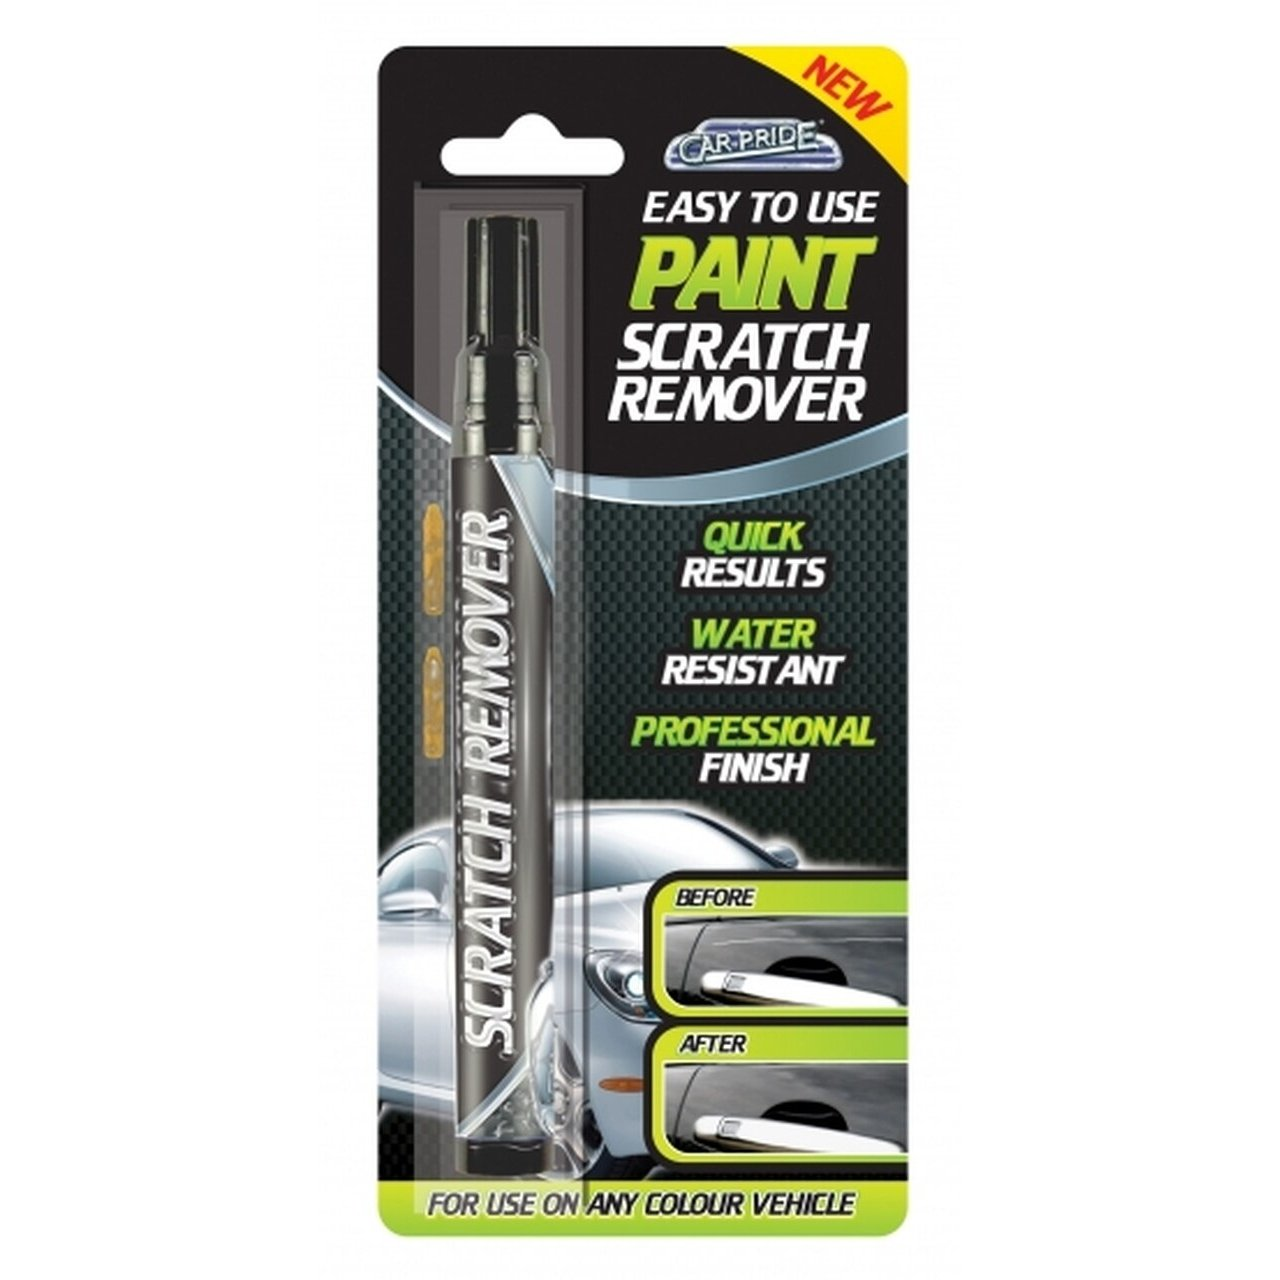 Car Pride Scratch Remover Pen